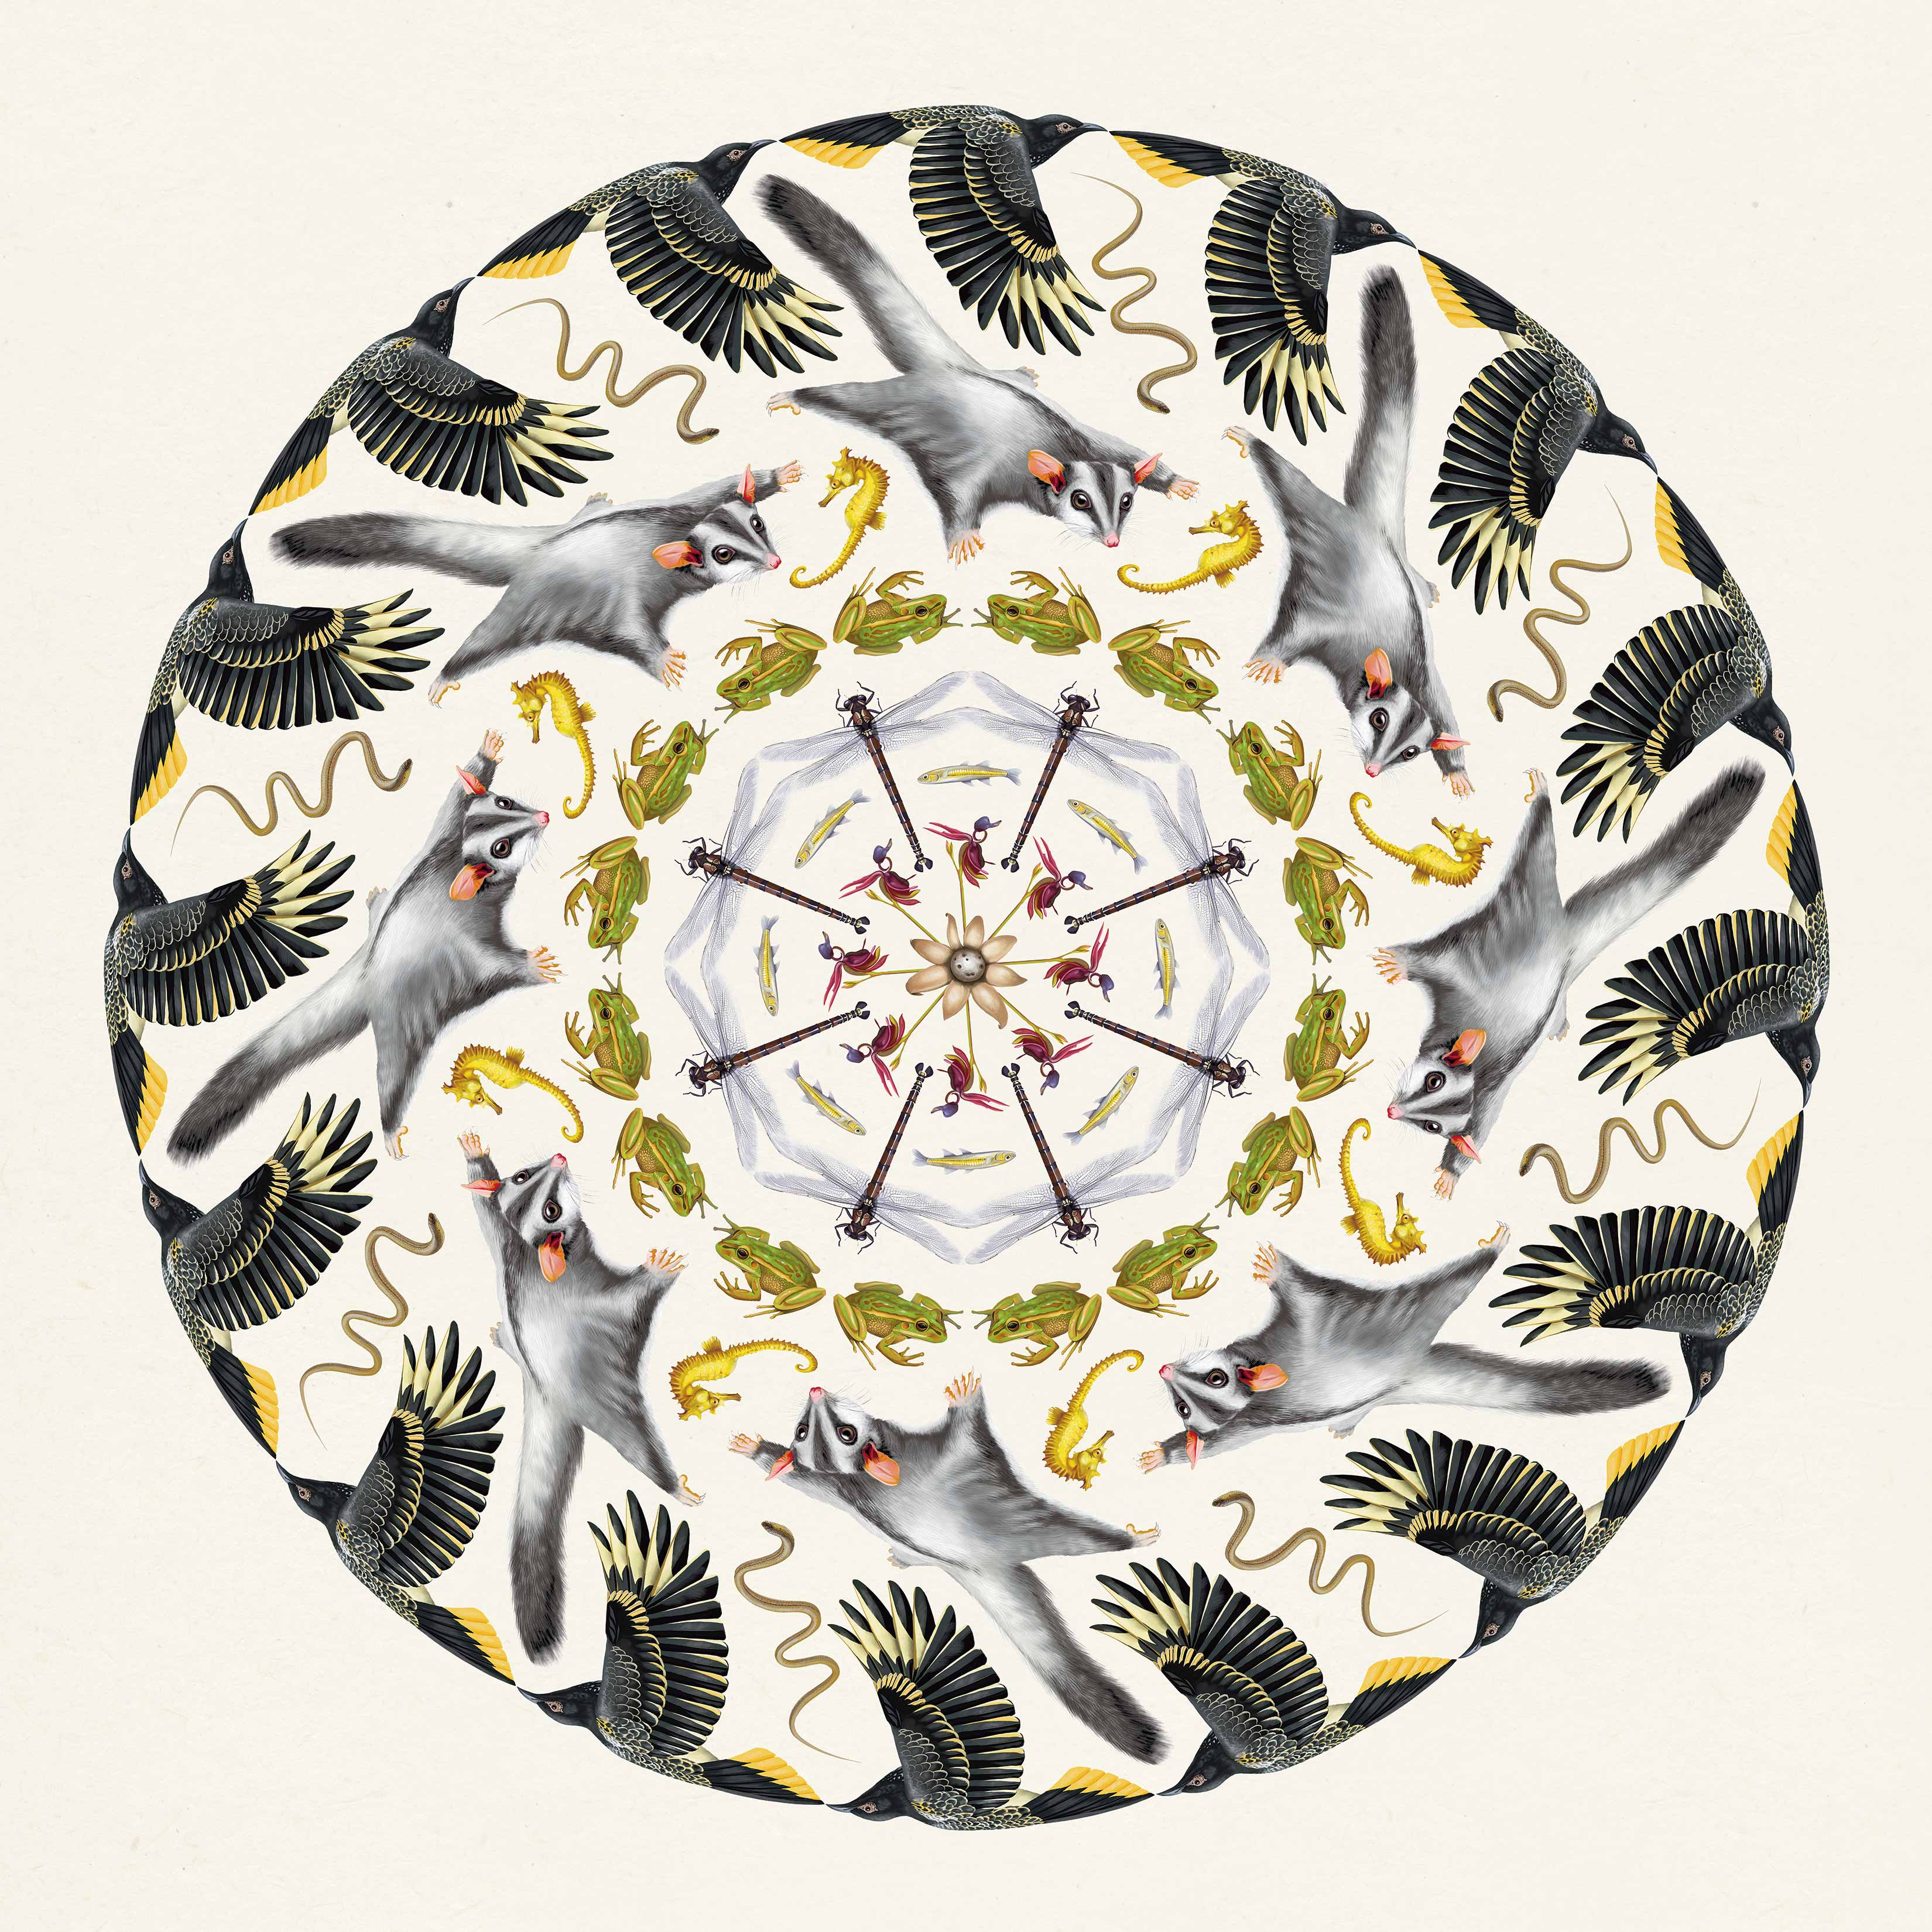 BIOMES Mandala - Featuring 9 stunning images of local biodiversity, 8 threatened, and one not yet threatened. Which is which? What is common today might be threatened tomorrow? How do we think about common species in the landscape. Created by Rachel Klyve